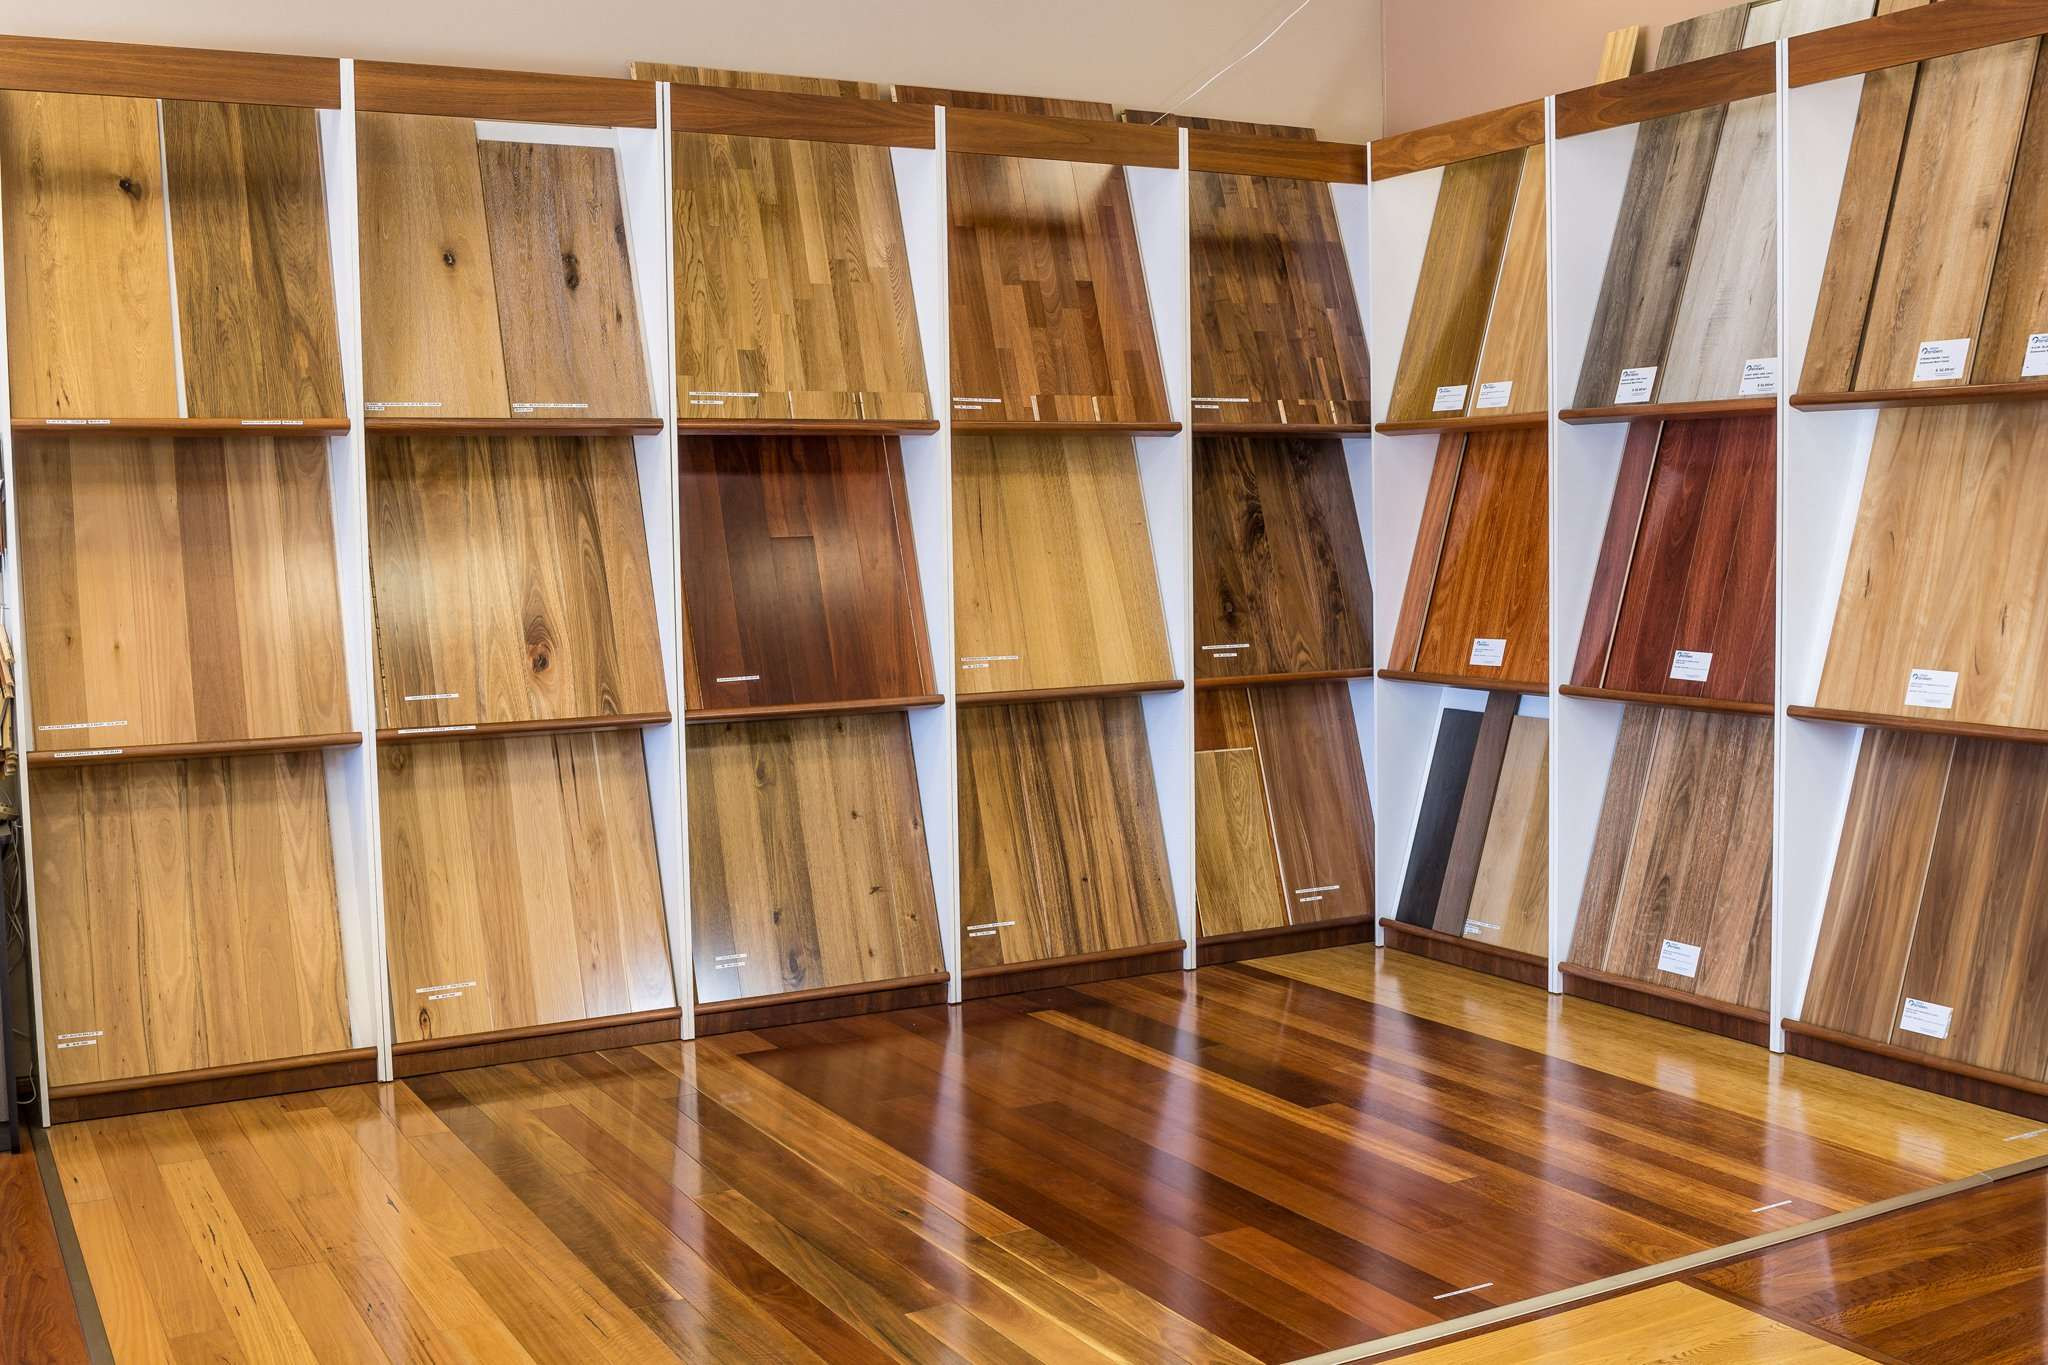 24 Stunning How Much Does It Cost To Put Down Hardwood Floors